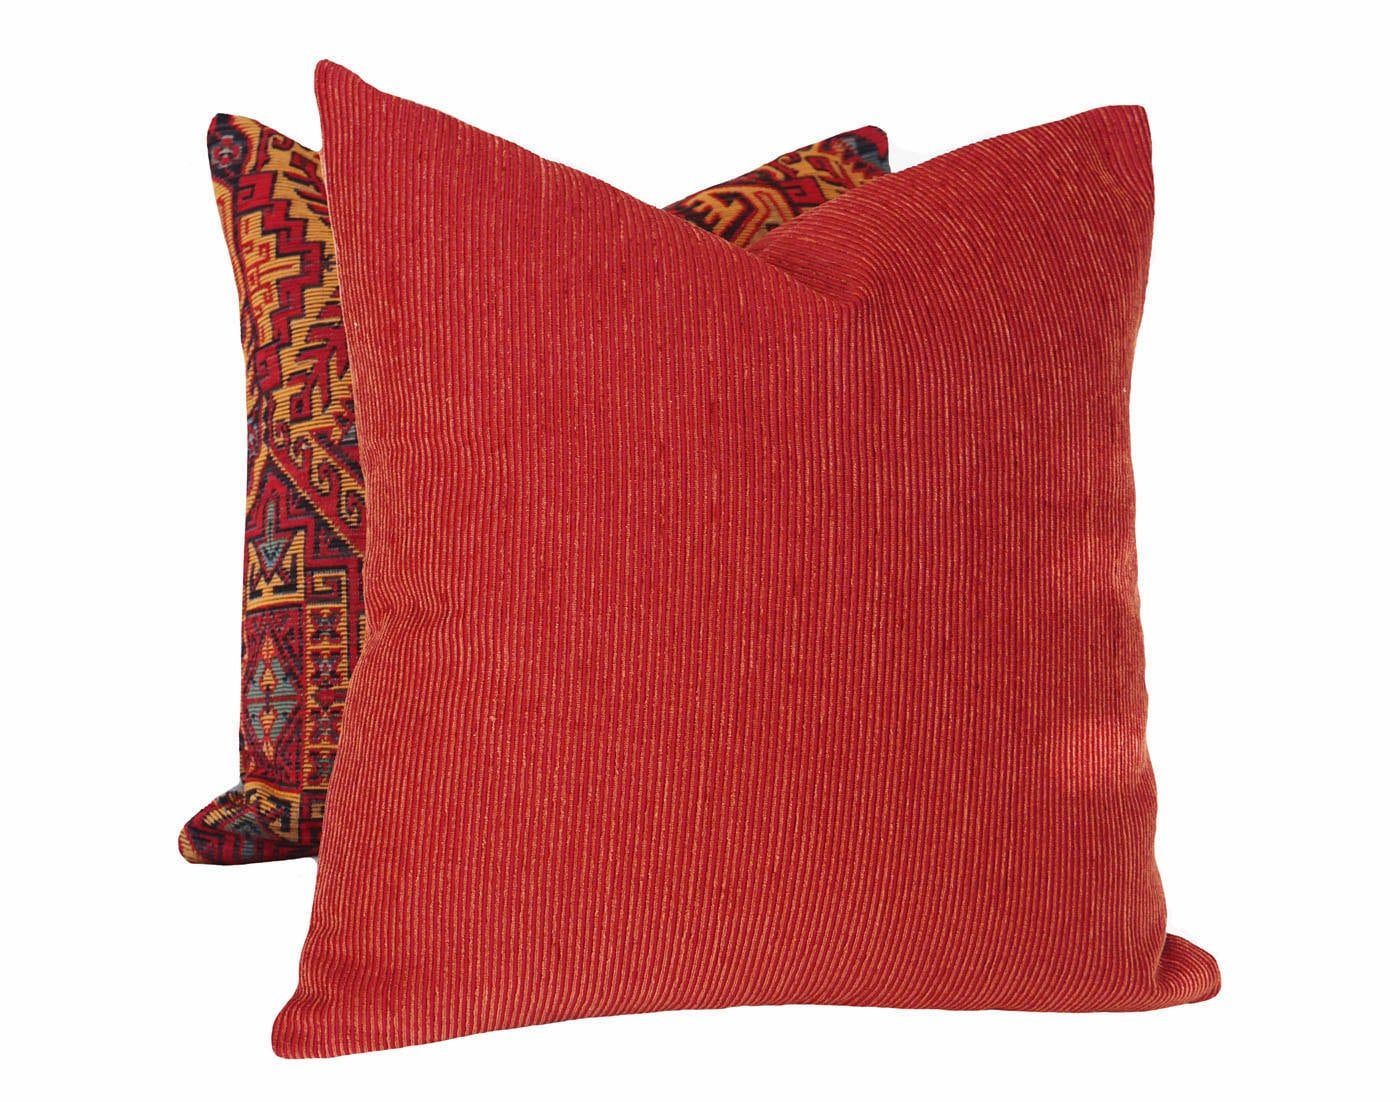 Rustic Red Pillow Covers Brick Red Pillows Southwestern